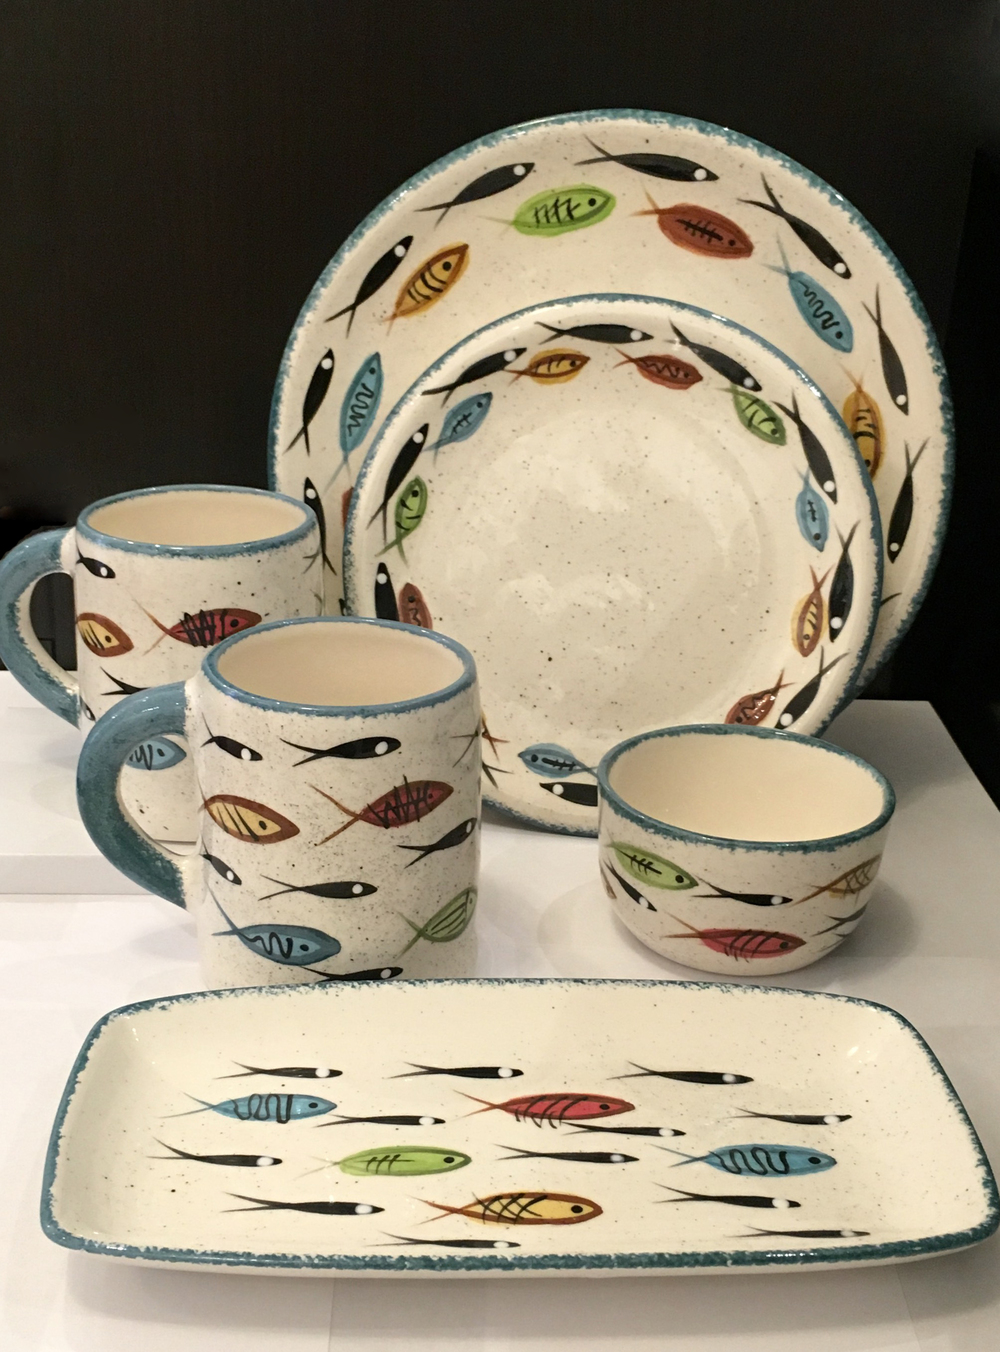 Mugs, dinnerware, rice bowl and pastry tray in traditional multifish pattern, $35-$68